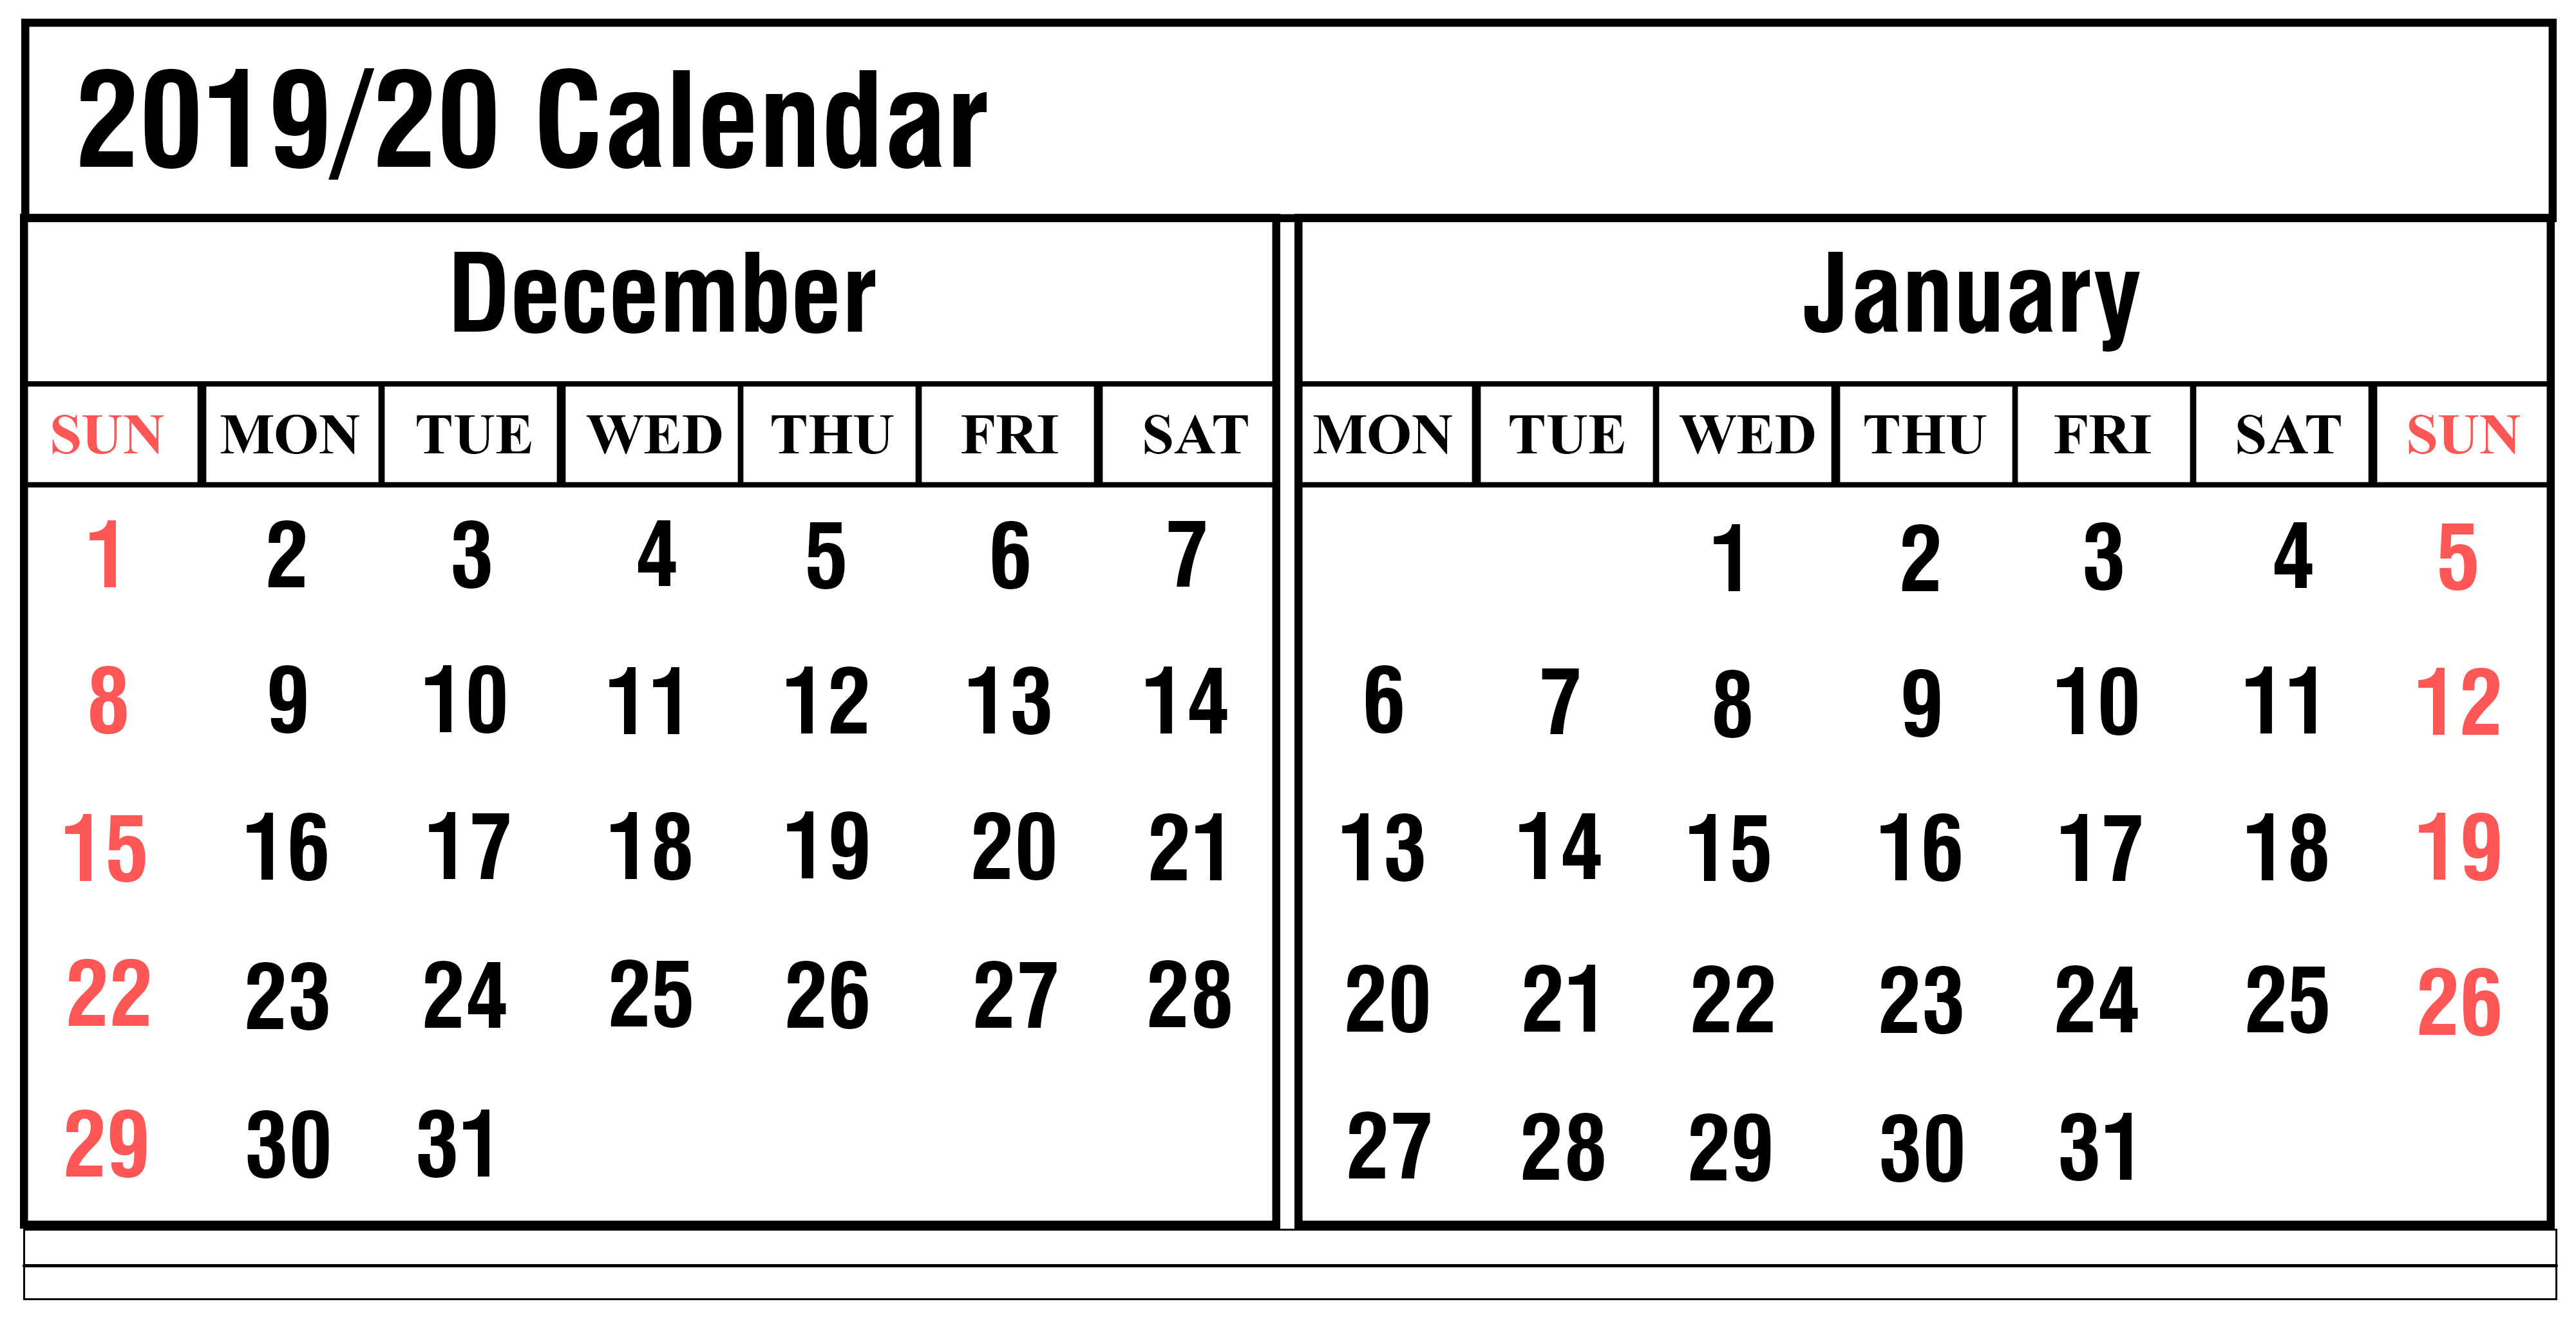 2020 Calendar 2019 Printable.December 2019 Printable Calendar Weekly Calendar For